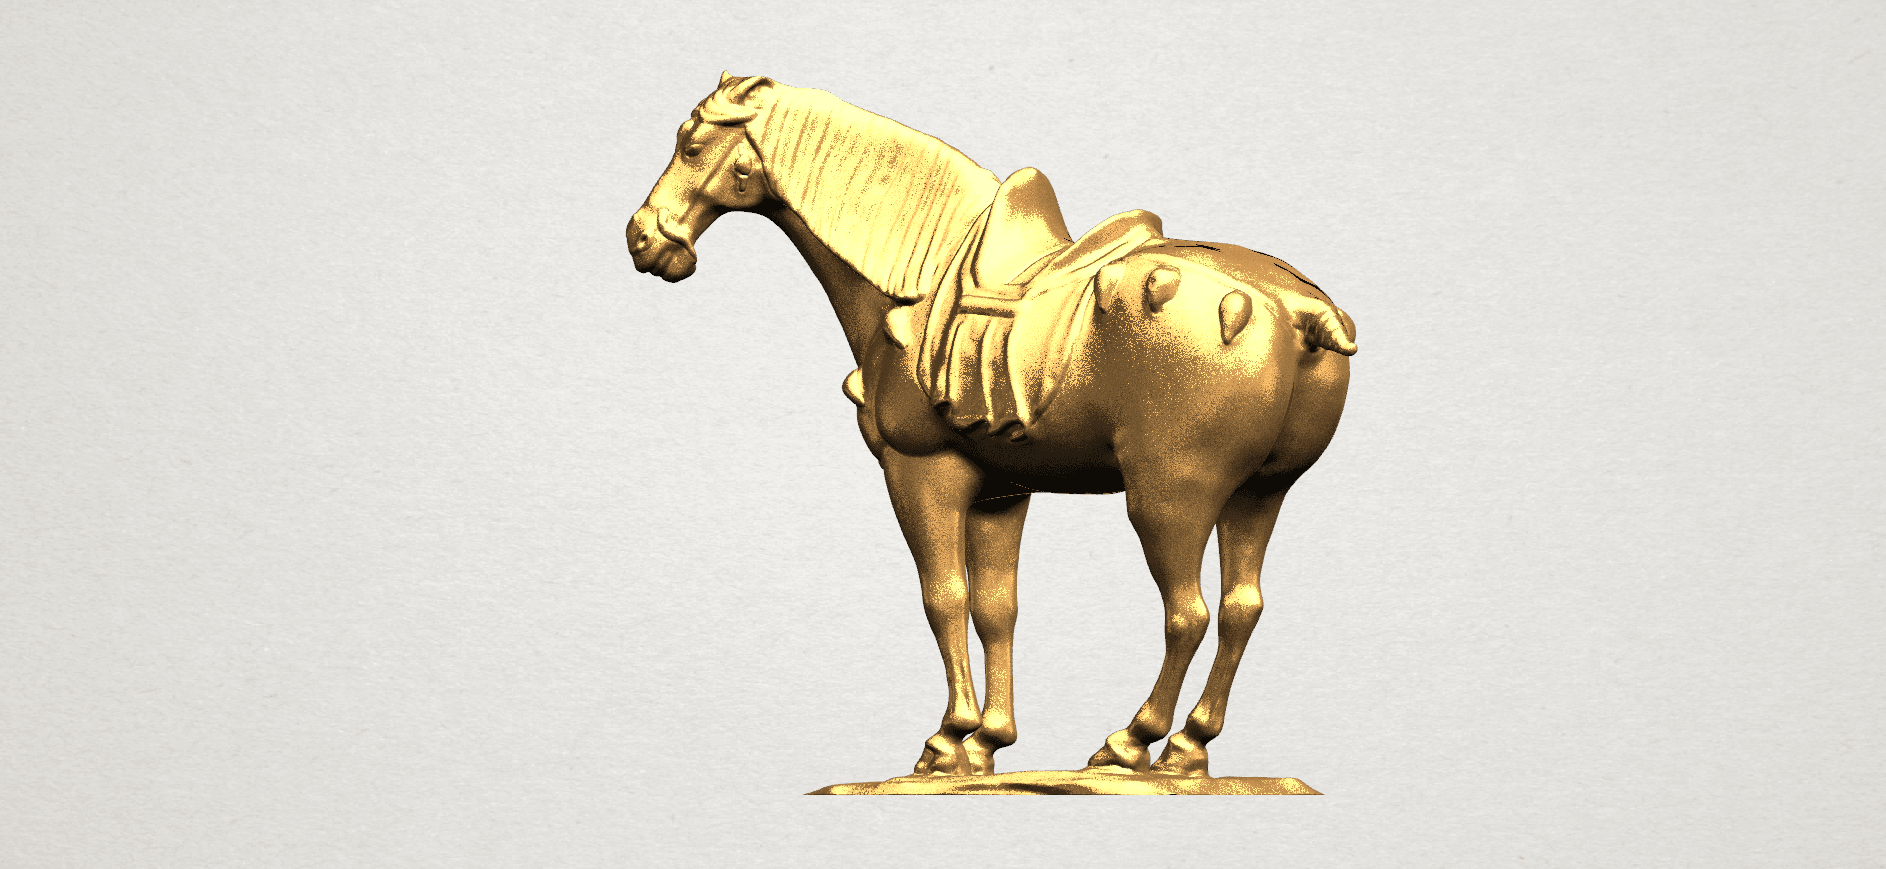 Horse (iv) A02.png Download free STL file Horse 04 • 3D print design, GeorgesNikkei